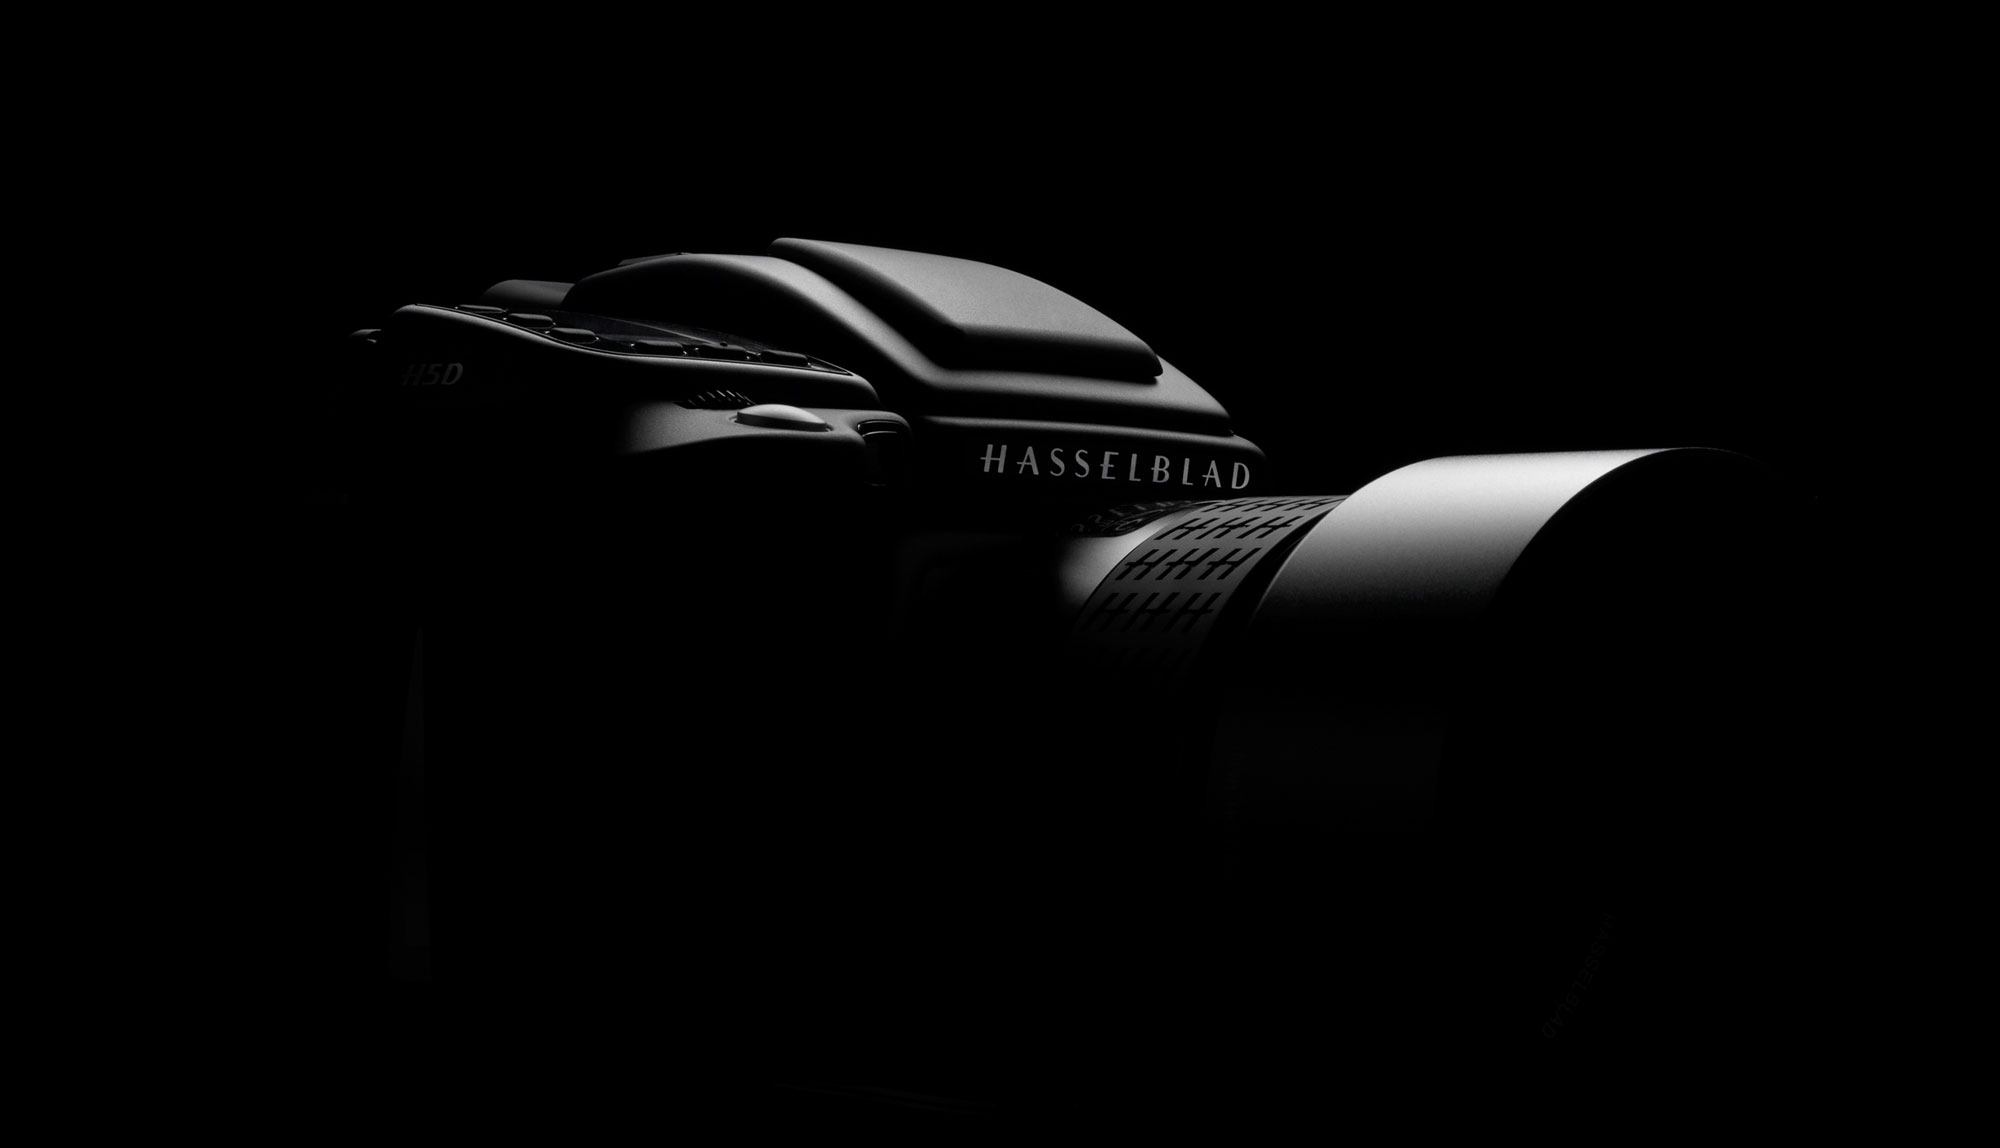 The Hasselblad H5D-50c will move the medium-format camera maker from CCD image sensor technology to CMOS technology.